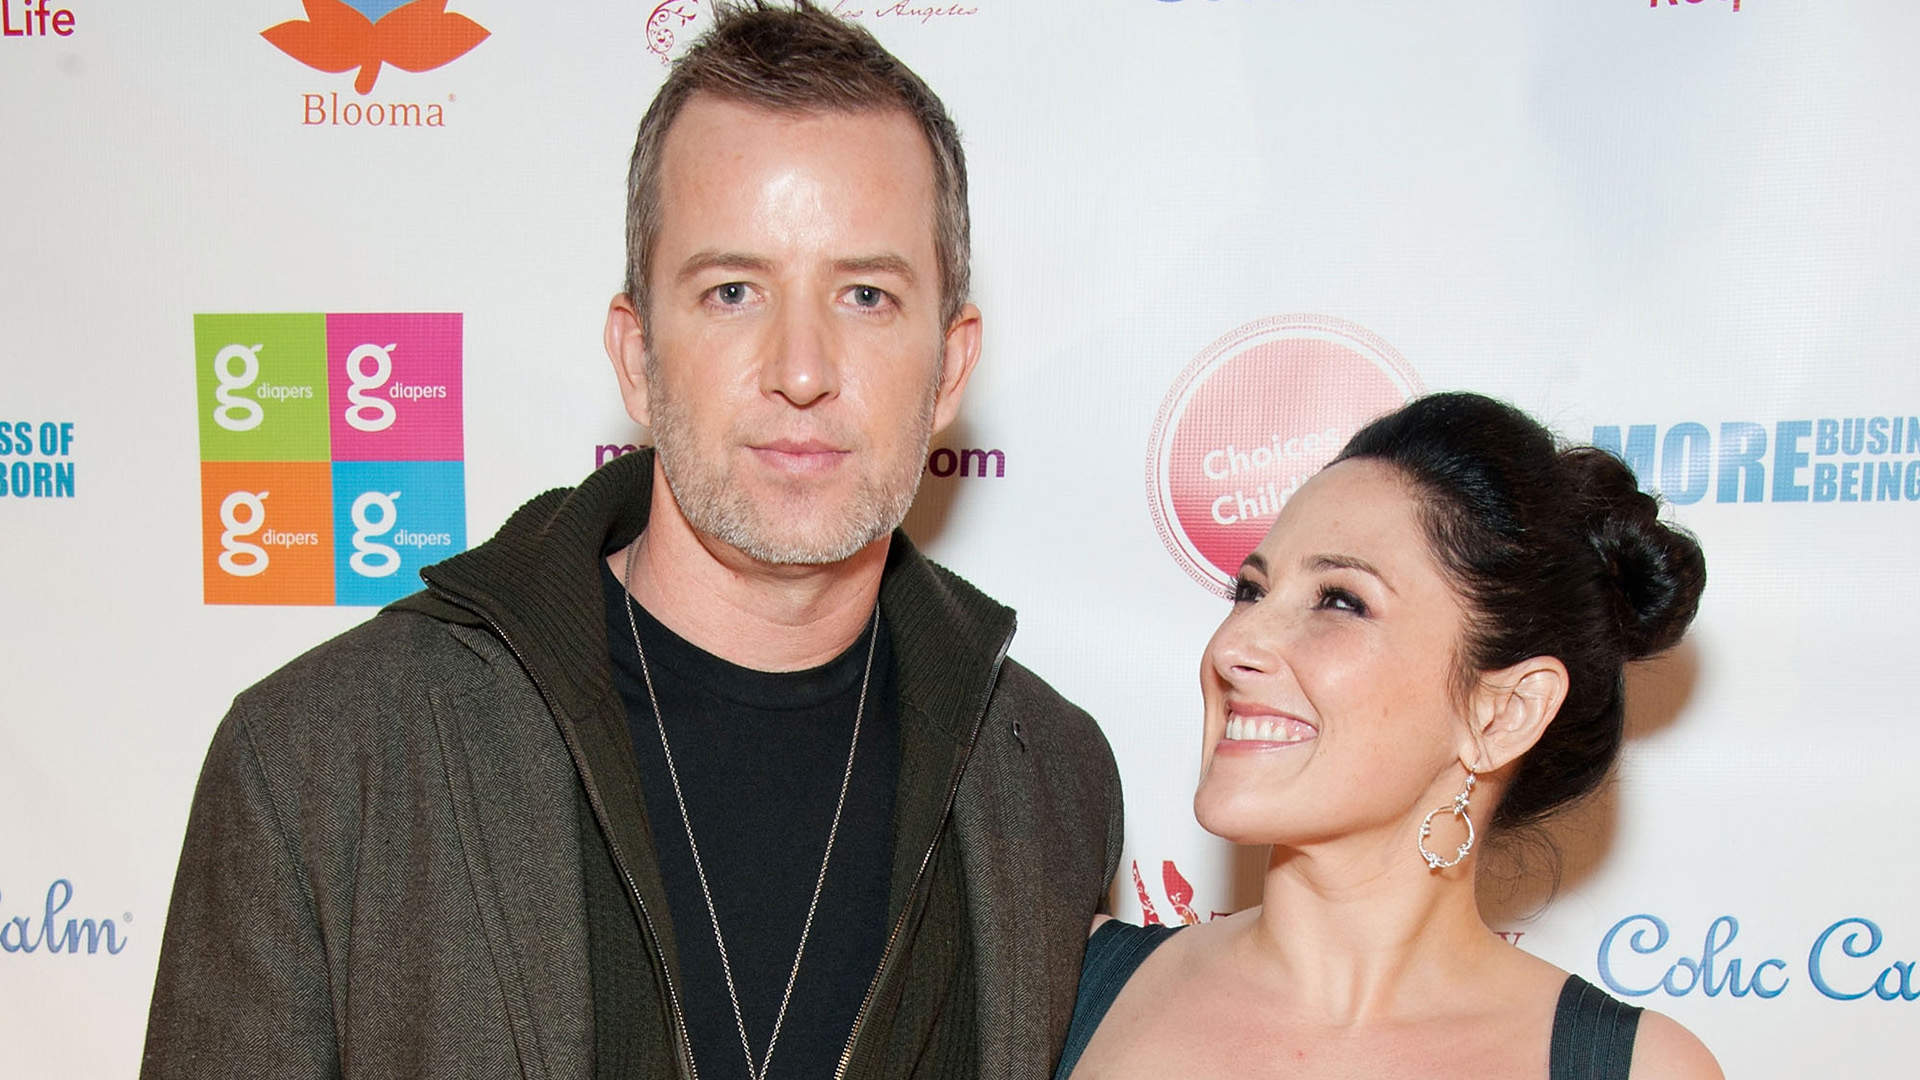 Ricki Lake on her late ex-husband: 'I don't want him to have died in vain'